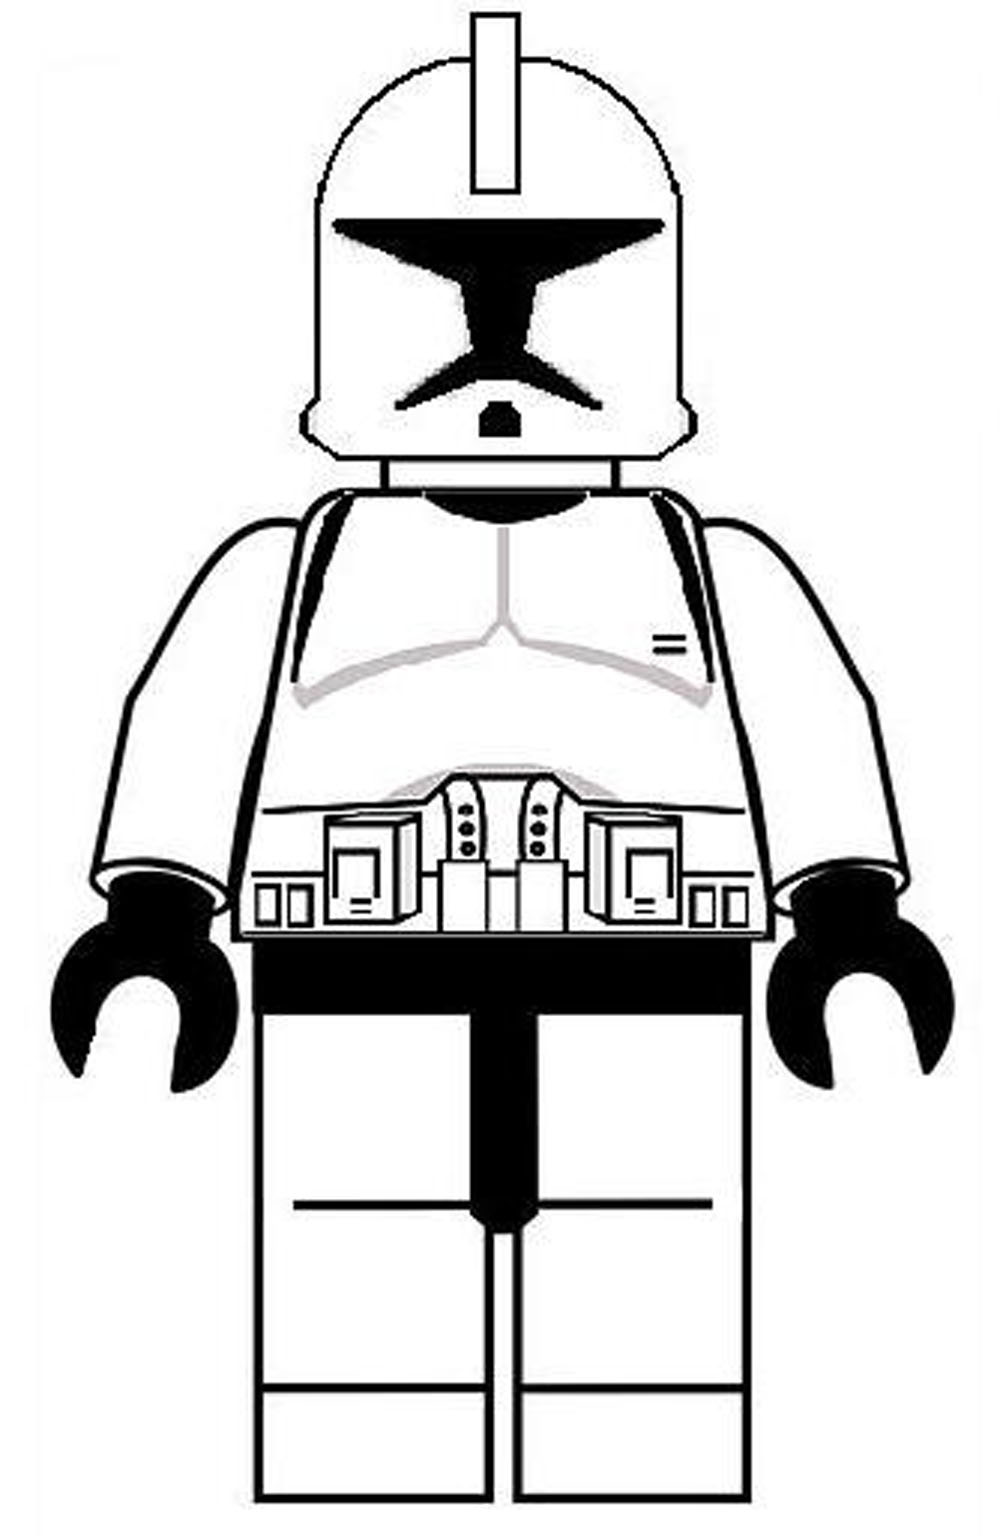 lego star wars pictures to colour lego star wars coloring pages to download and print for free colour pictures star lego to wars